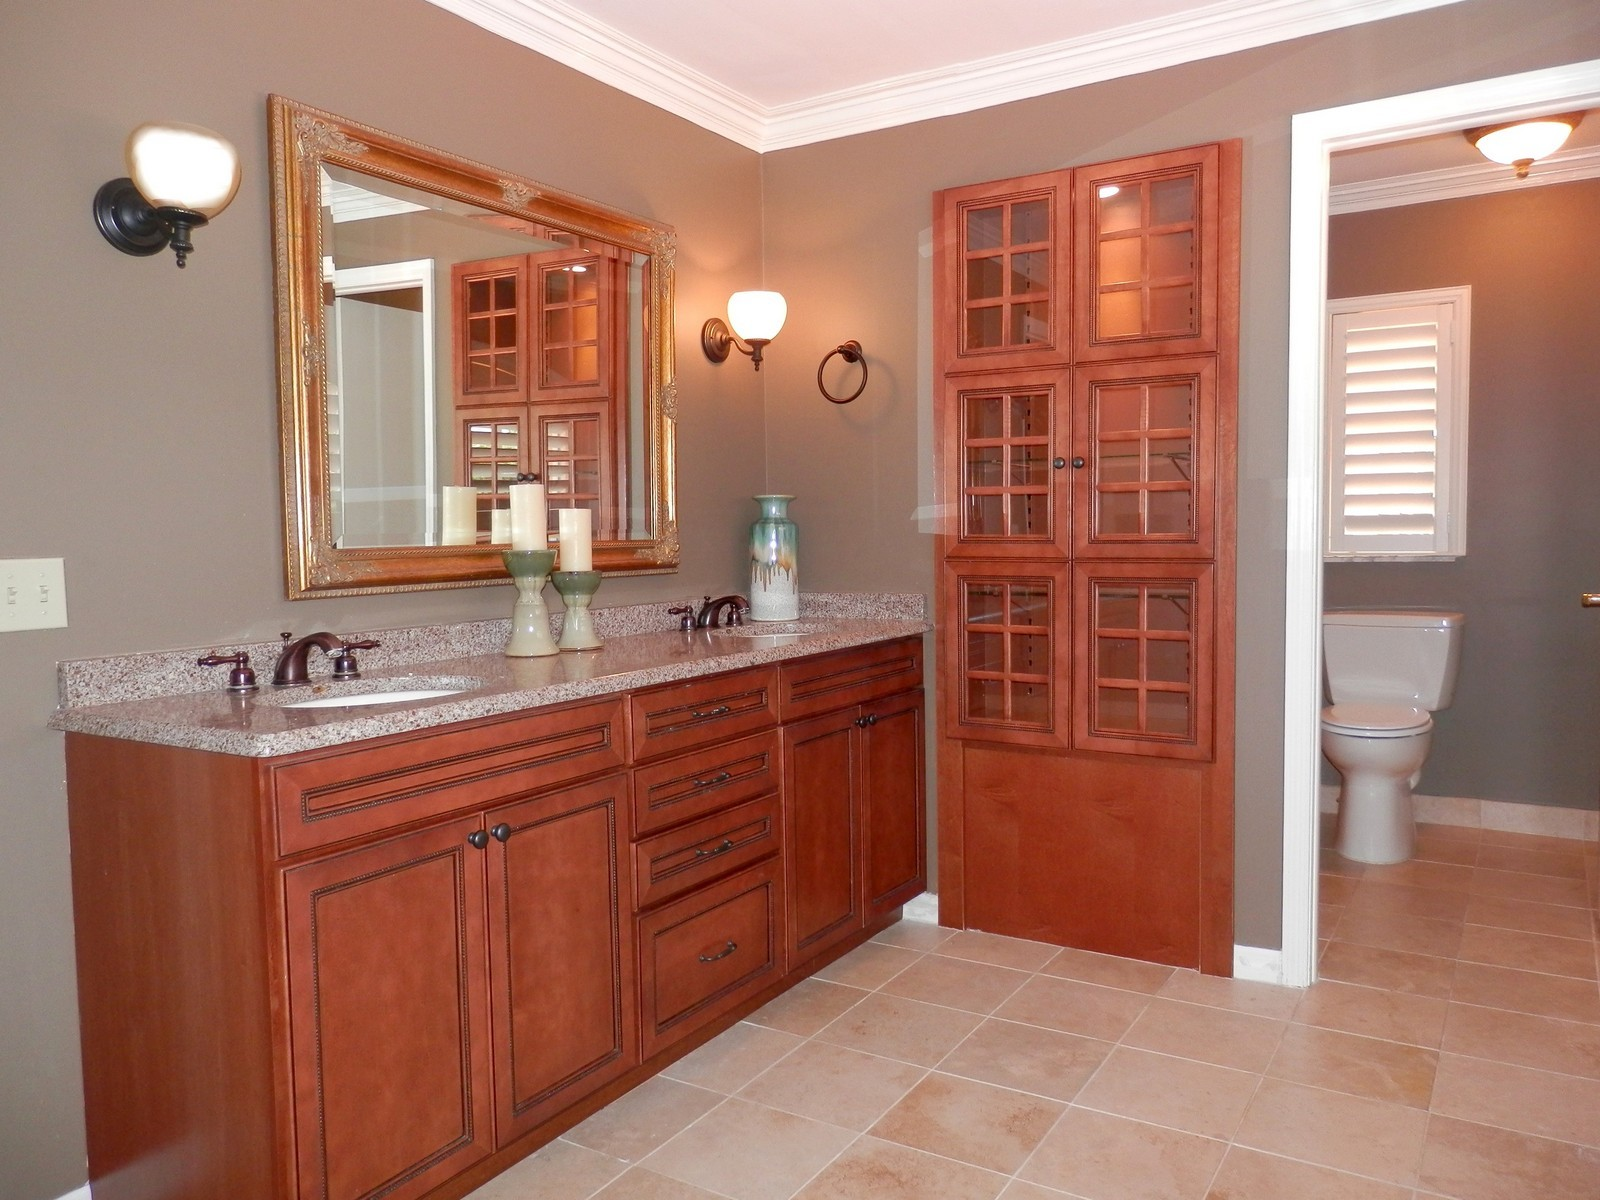 Real Estate Photography - 4920 Lyford Cay Road, Tampa, FL, 33629 - Master Bathroom